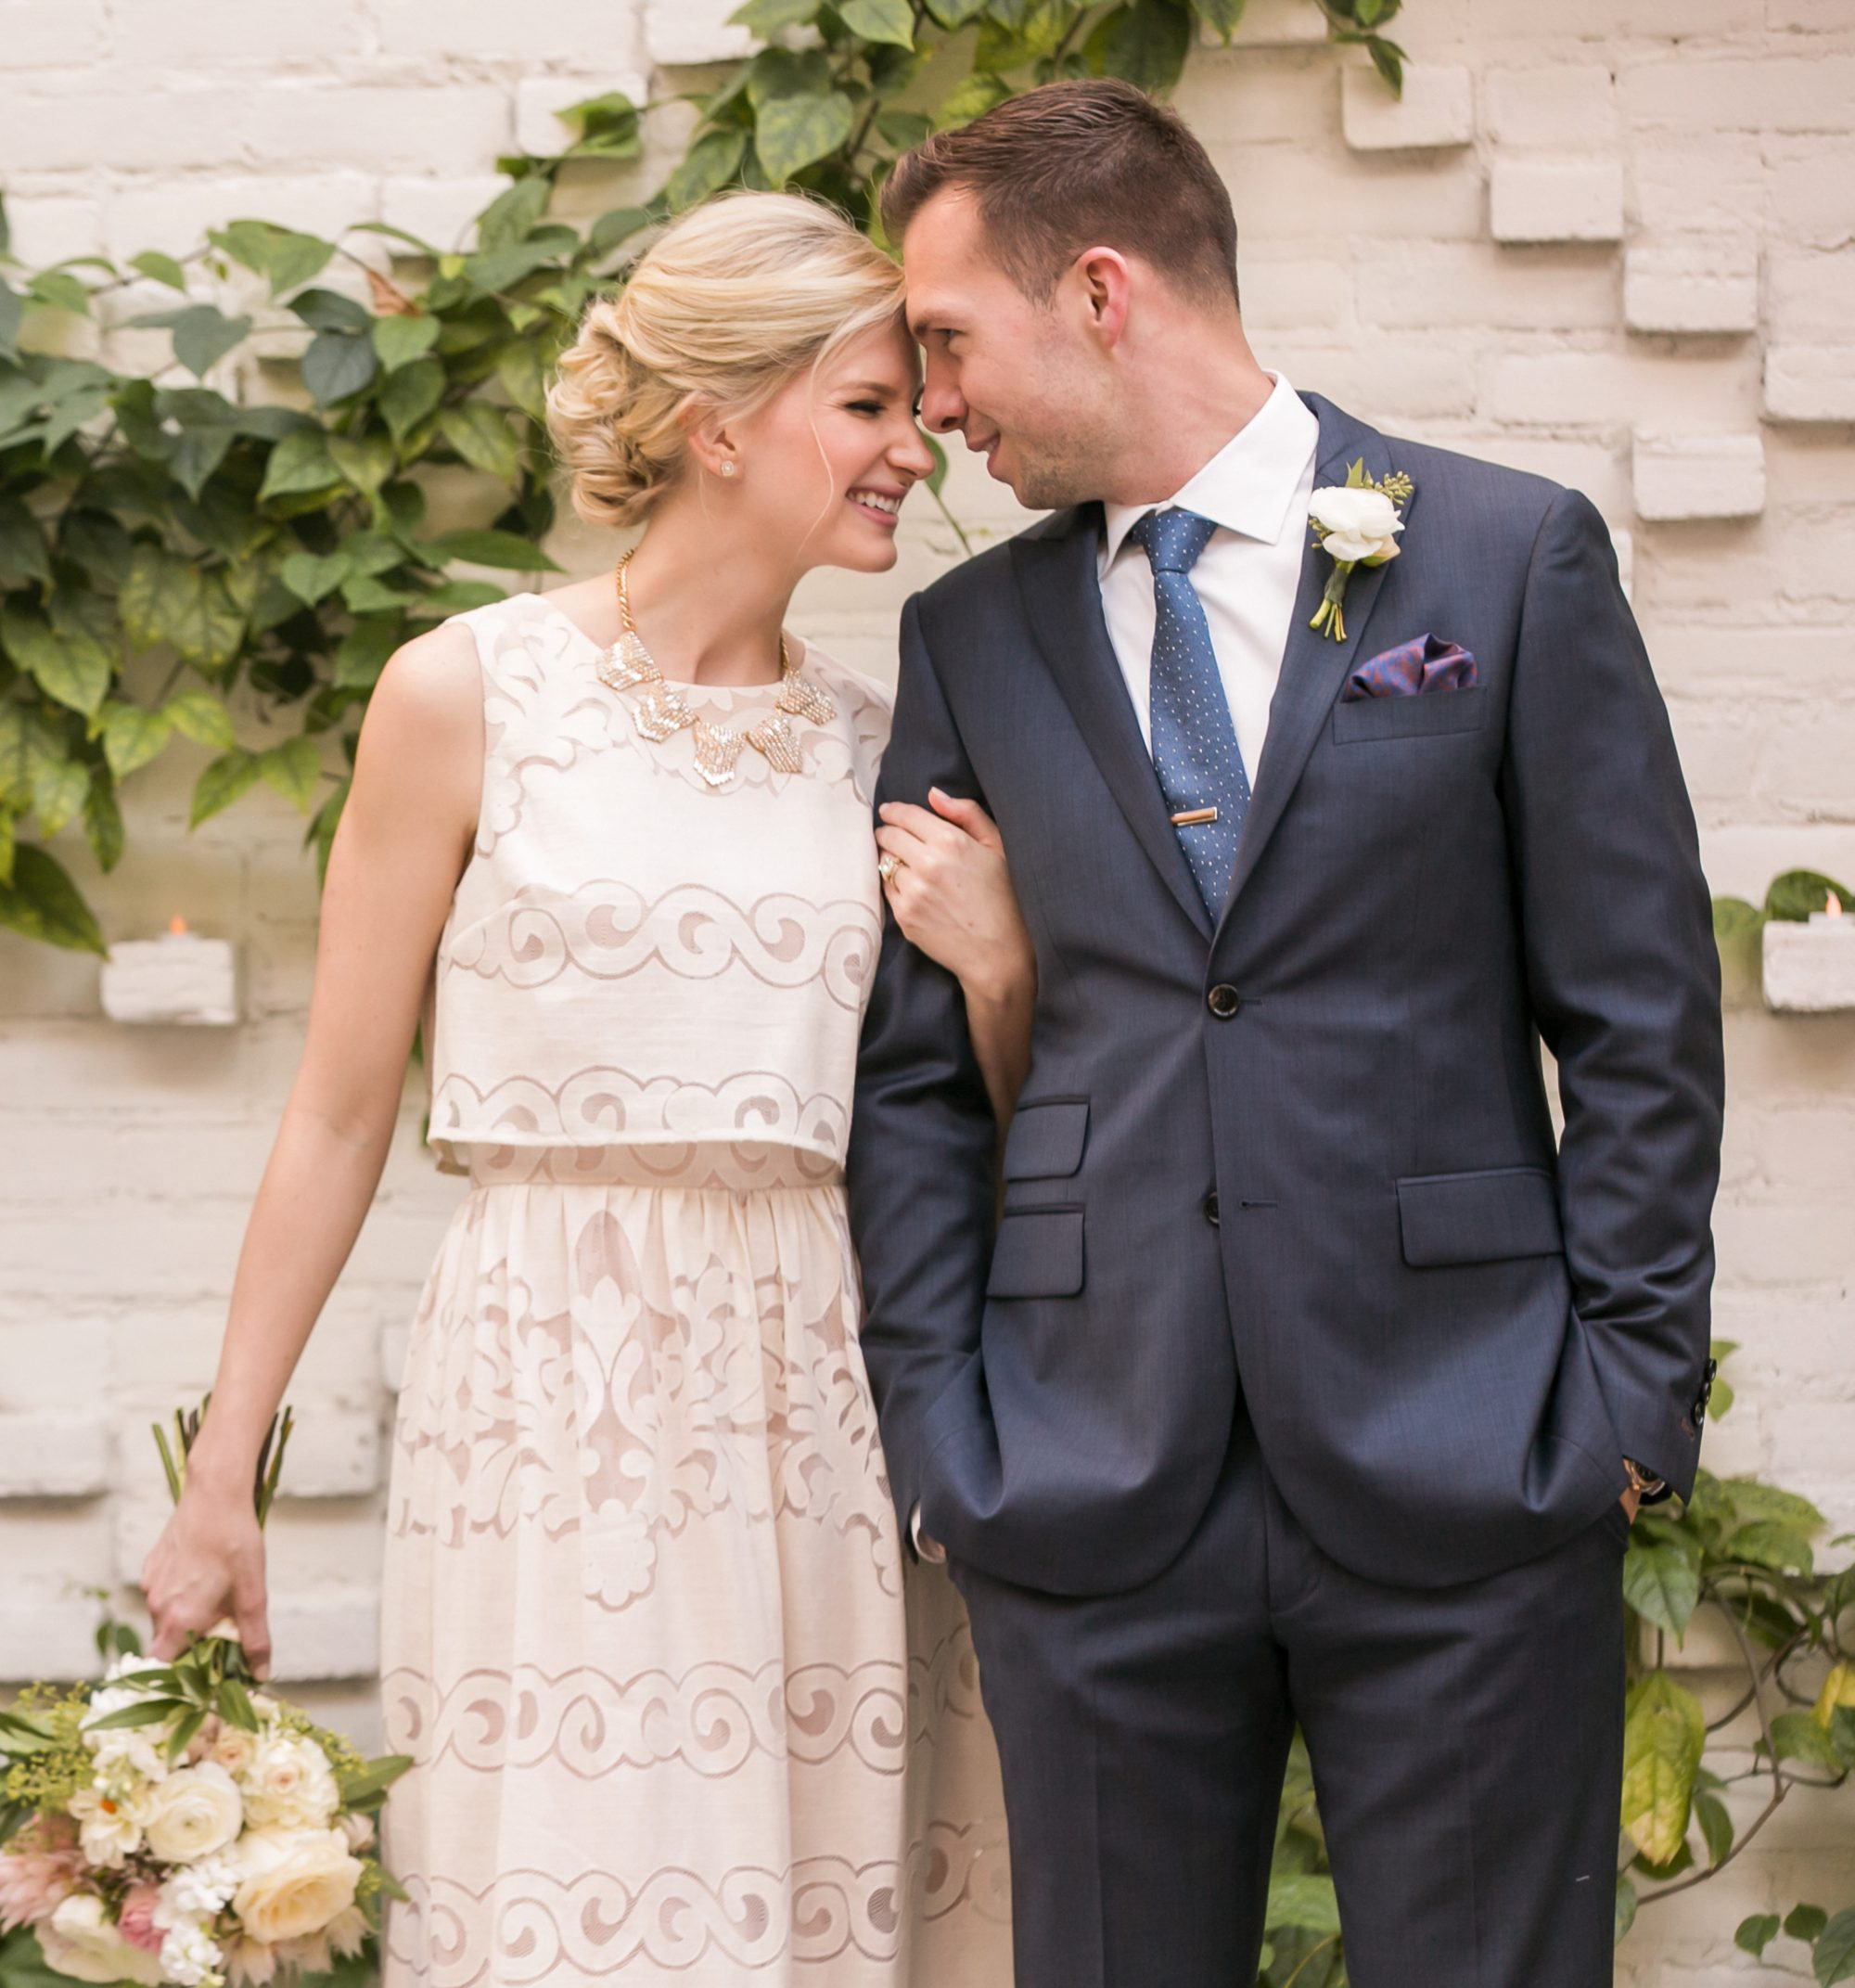 Ashley Brooke and Ryan Chambers Wedding at The Oxford Exchange 2014